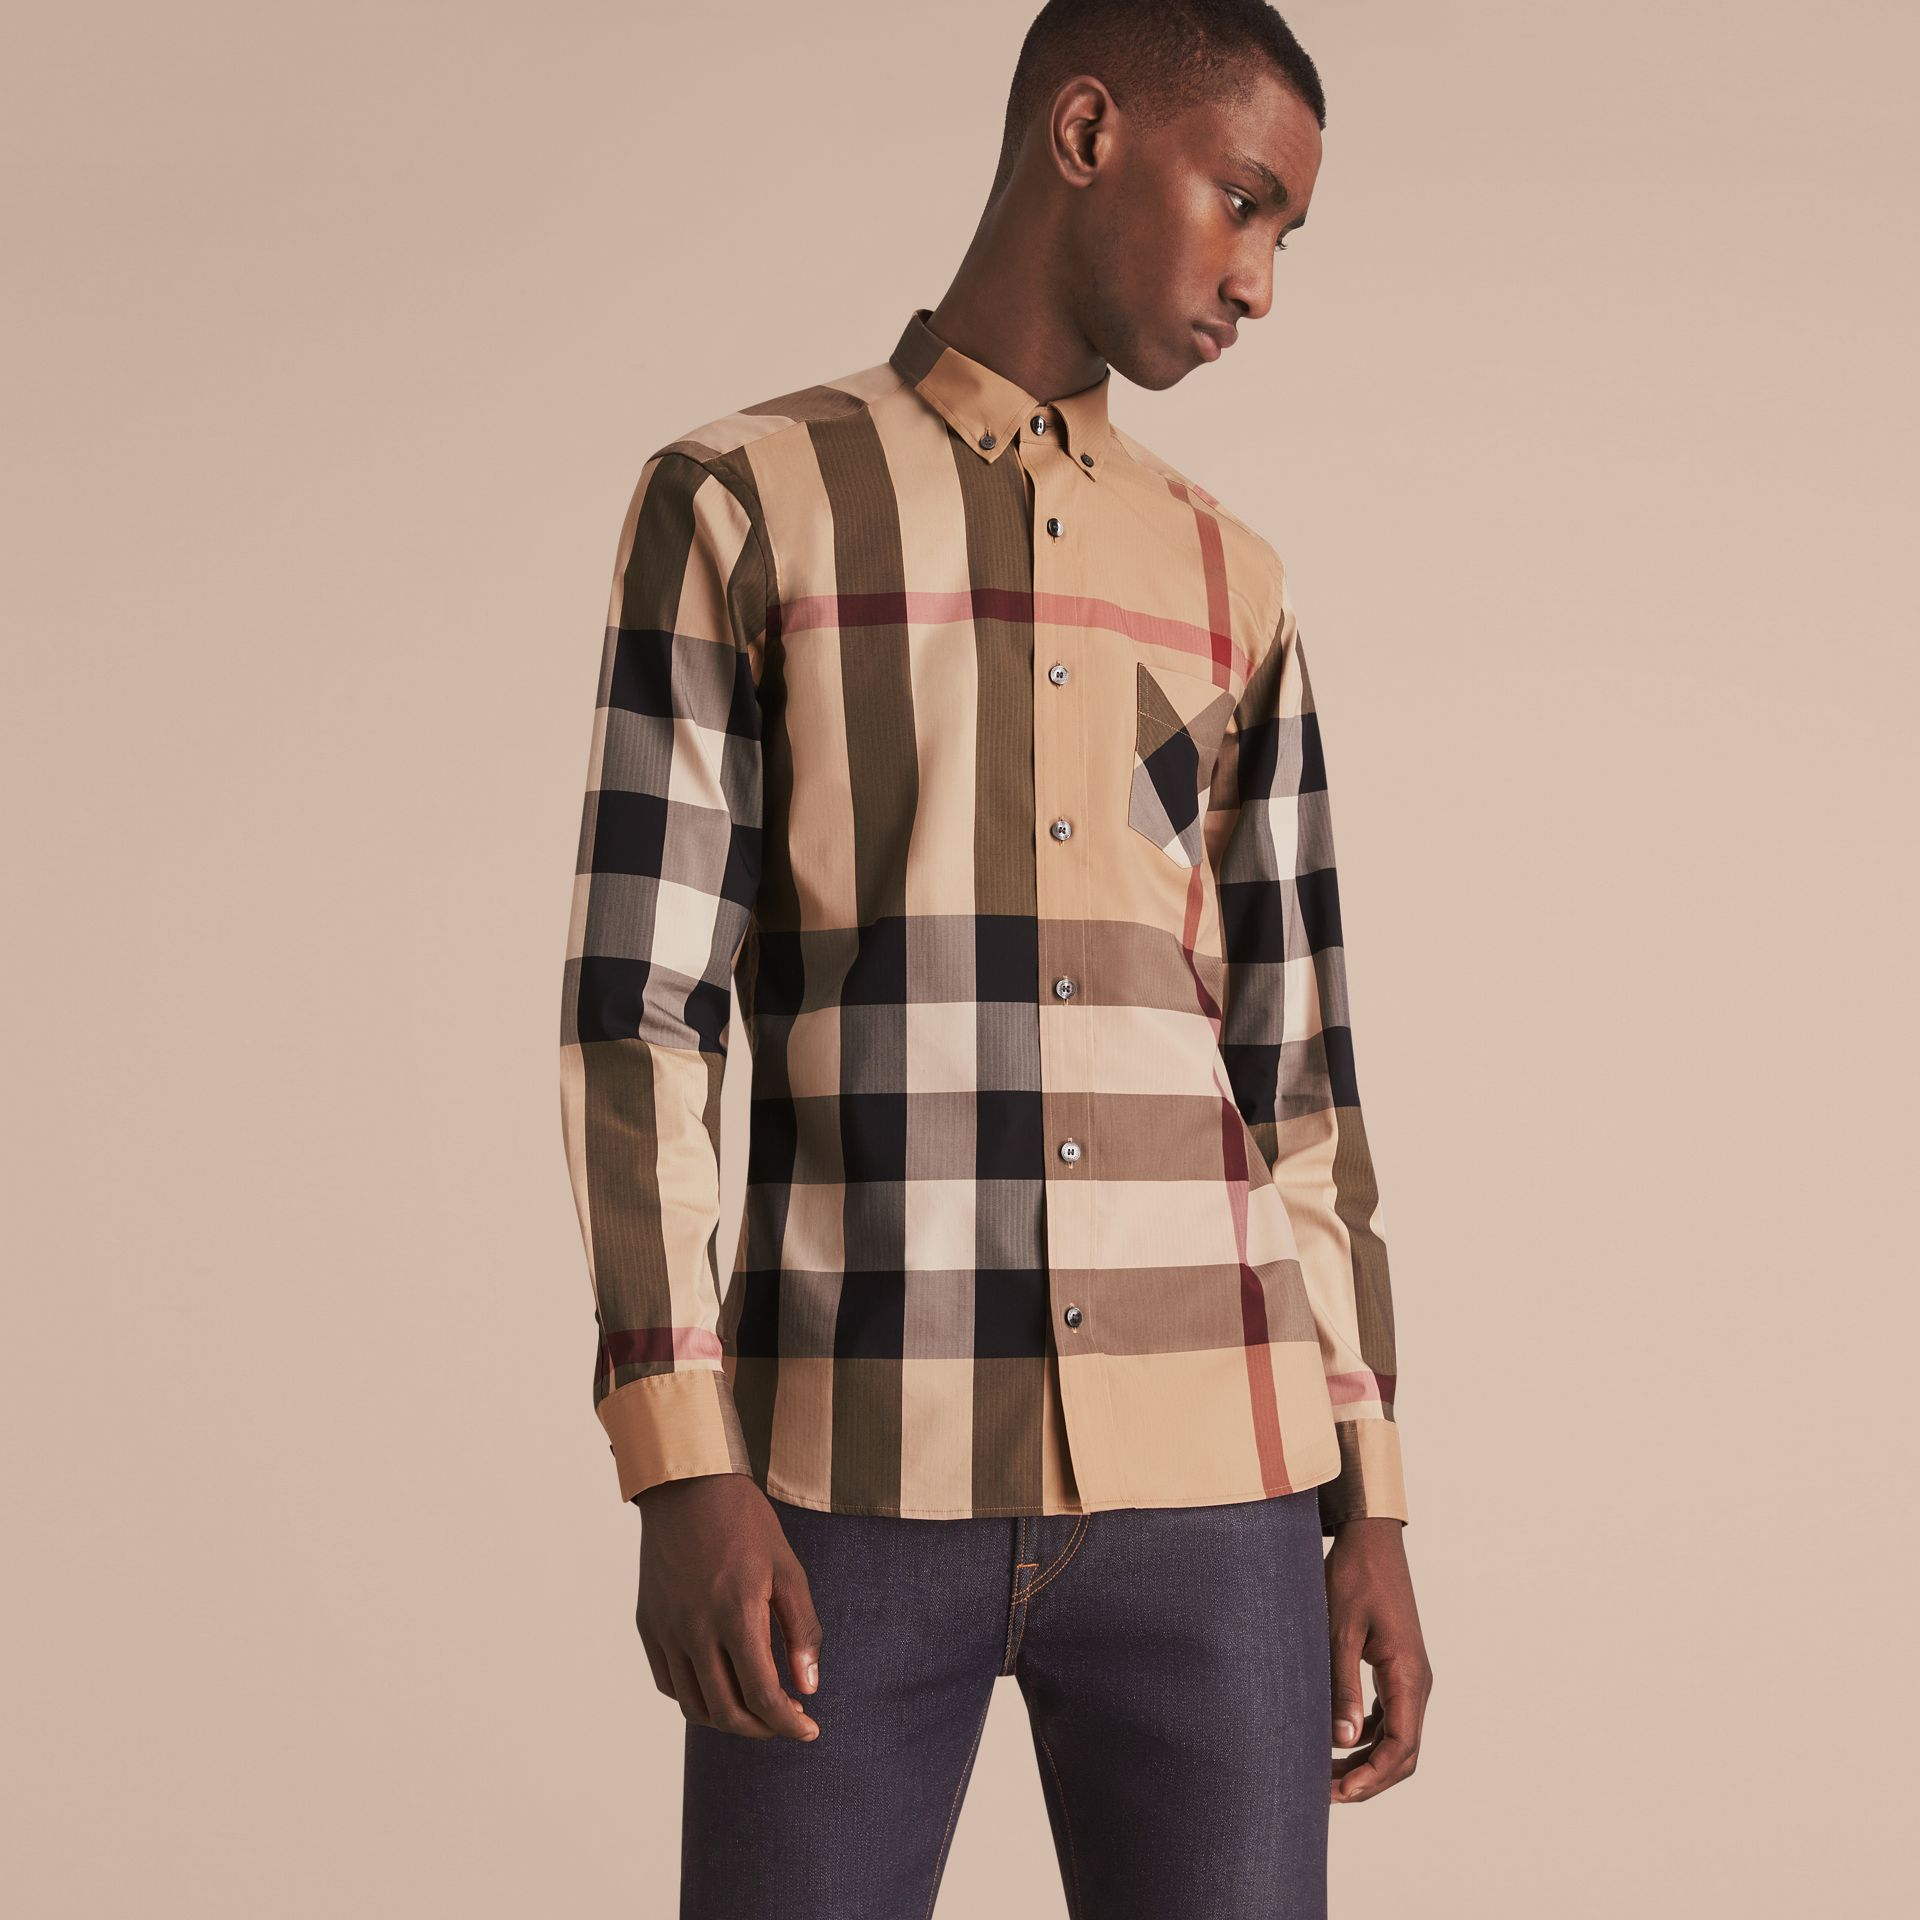 Button-down Collar Check Stretch Cotton Blend Shirt in Camel - Men | Burberry - gallery image 6